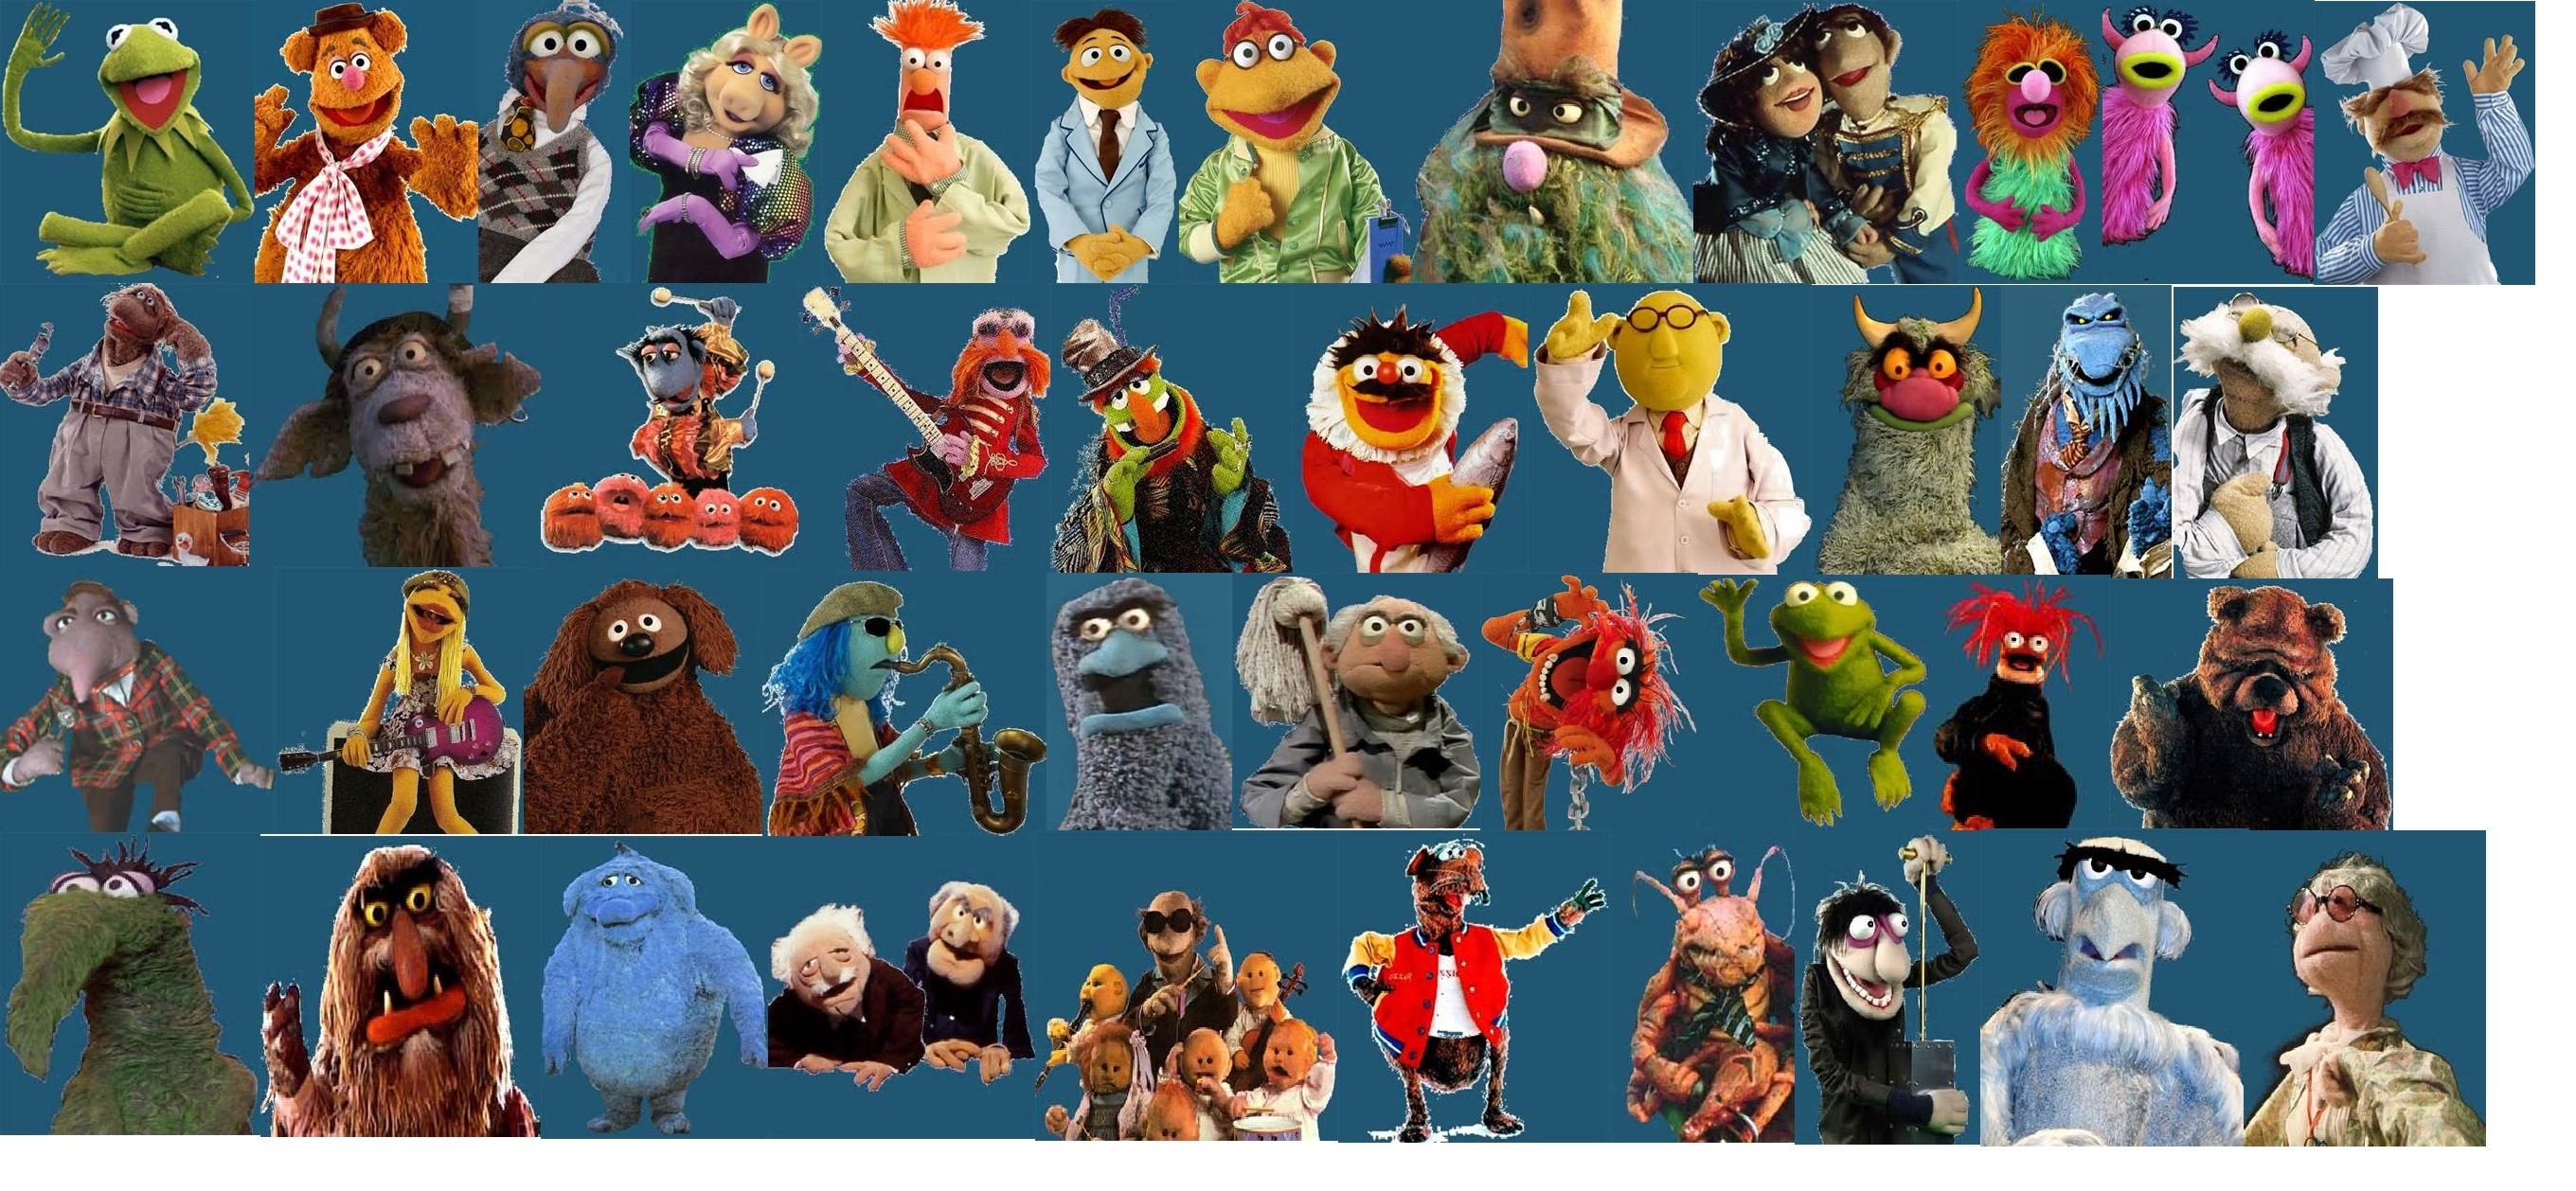 Possible Cast for the tiếp theo Muppet Movie